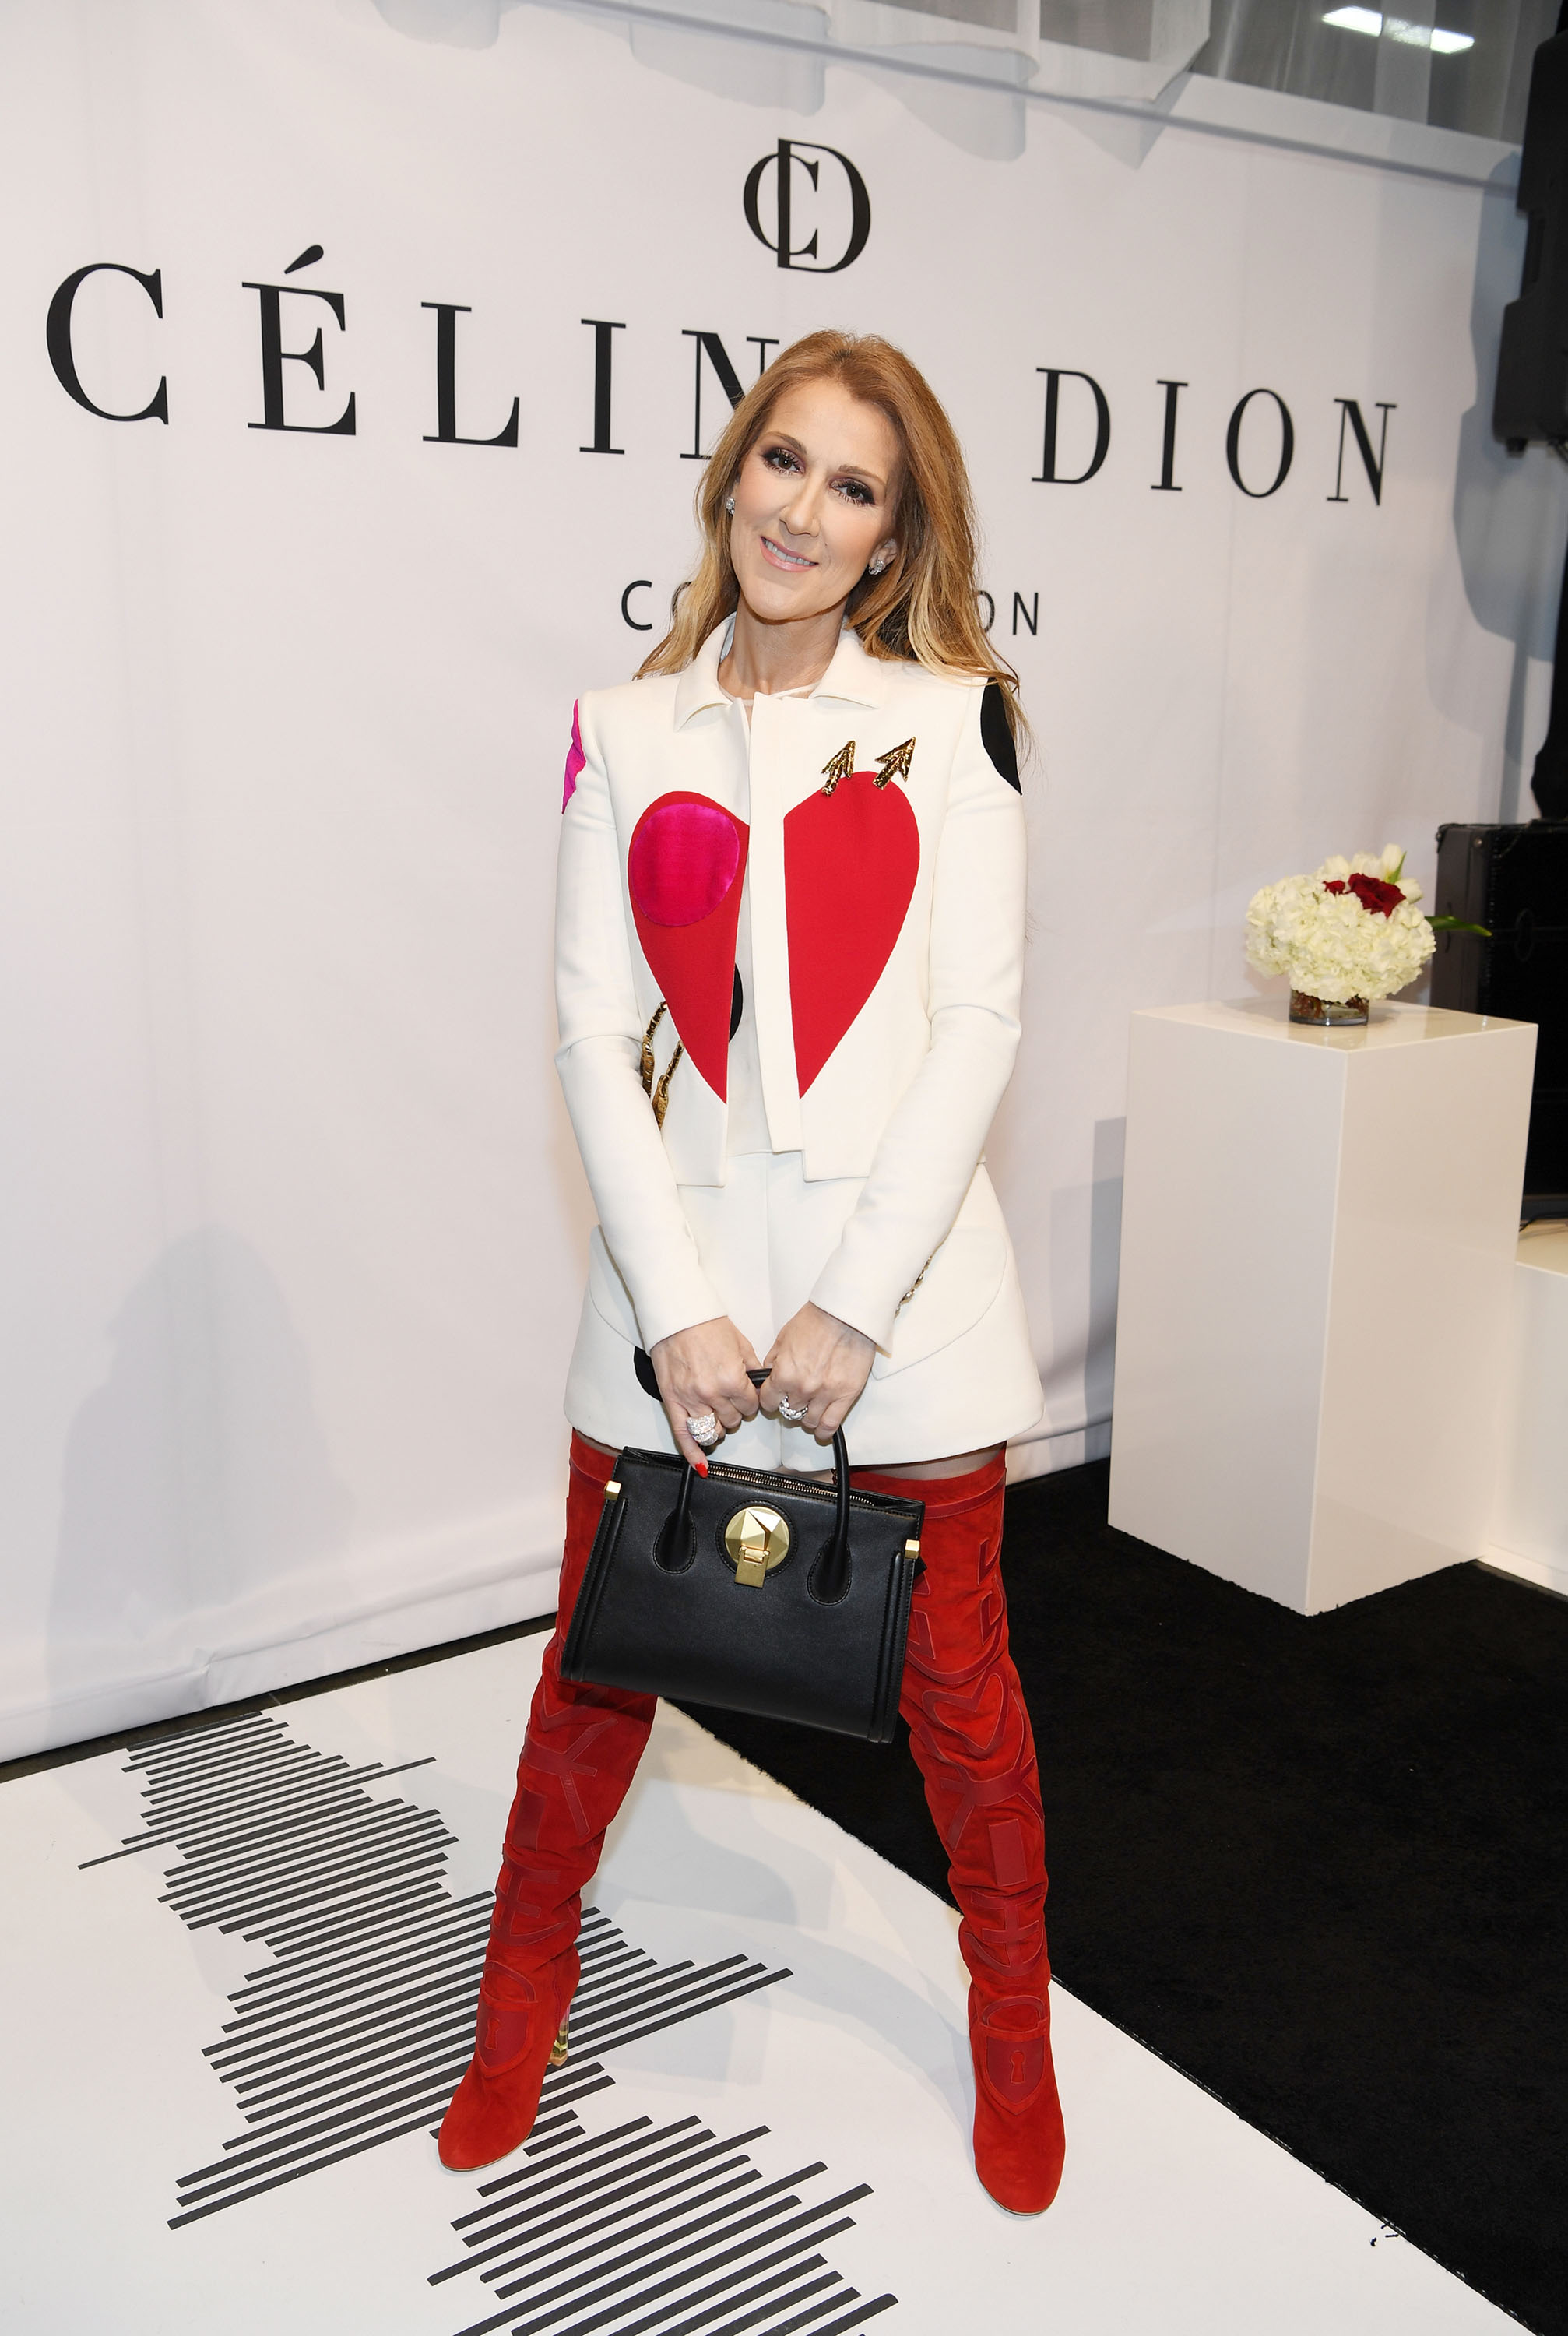 Celine Dion Collection Getty